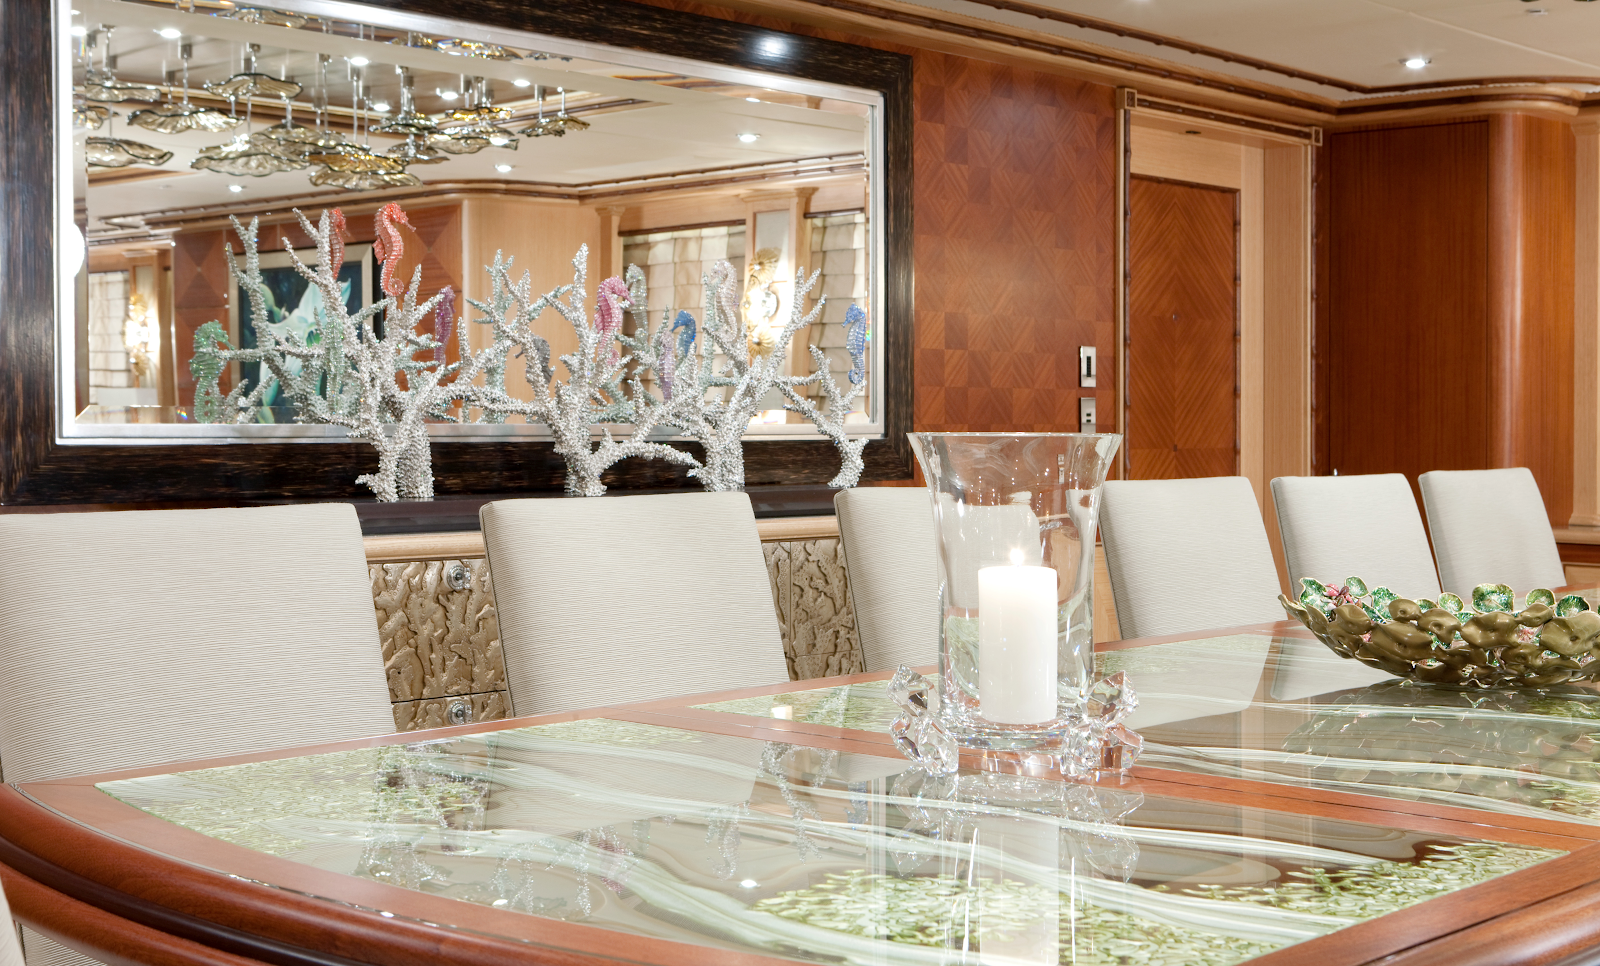 Rendering of a Stateroom in a Superyacht.